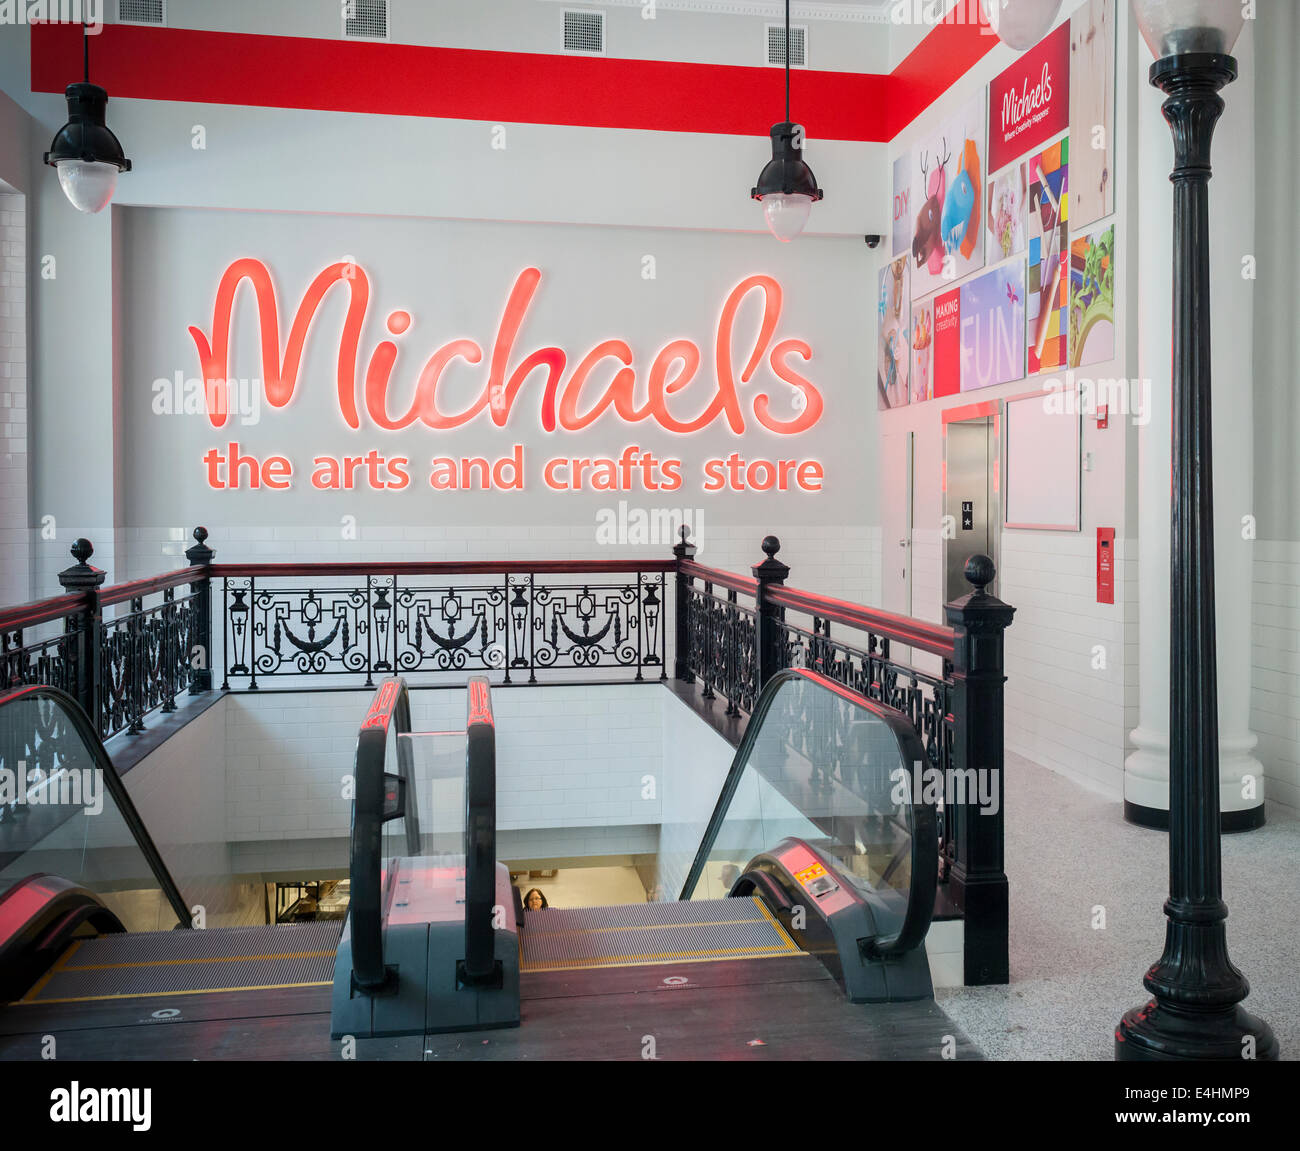 Michaels arts and crafts stock photos michaels arts and for Art and craft stores nyc